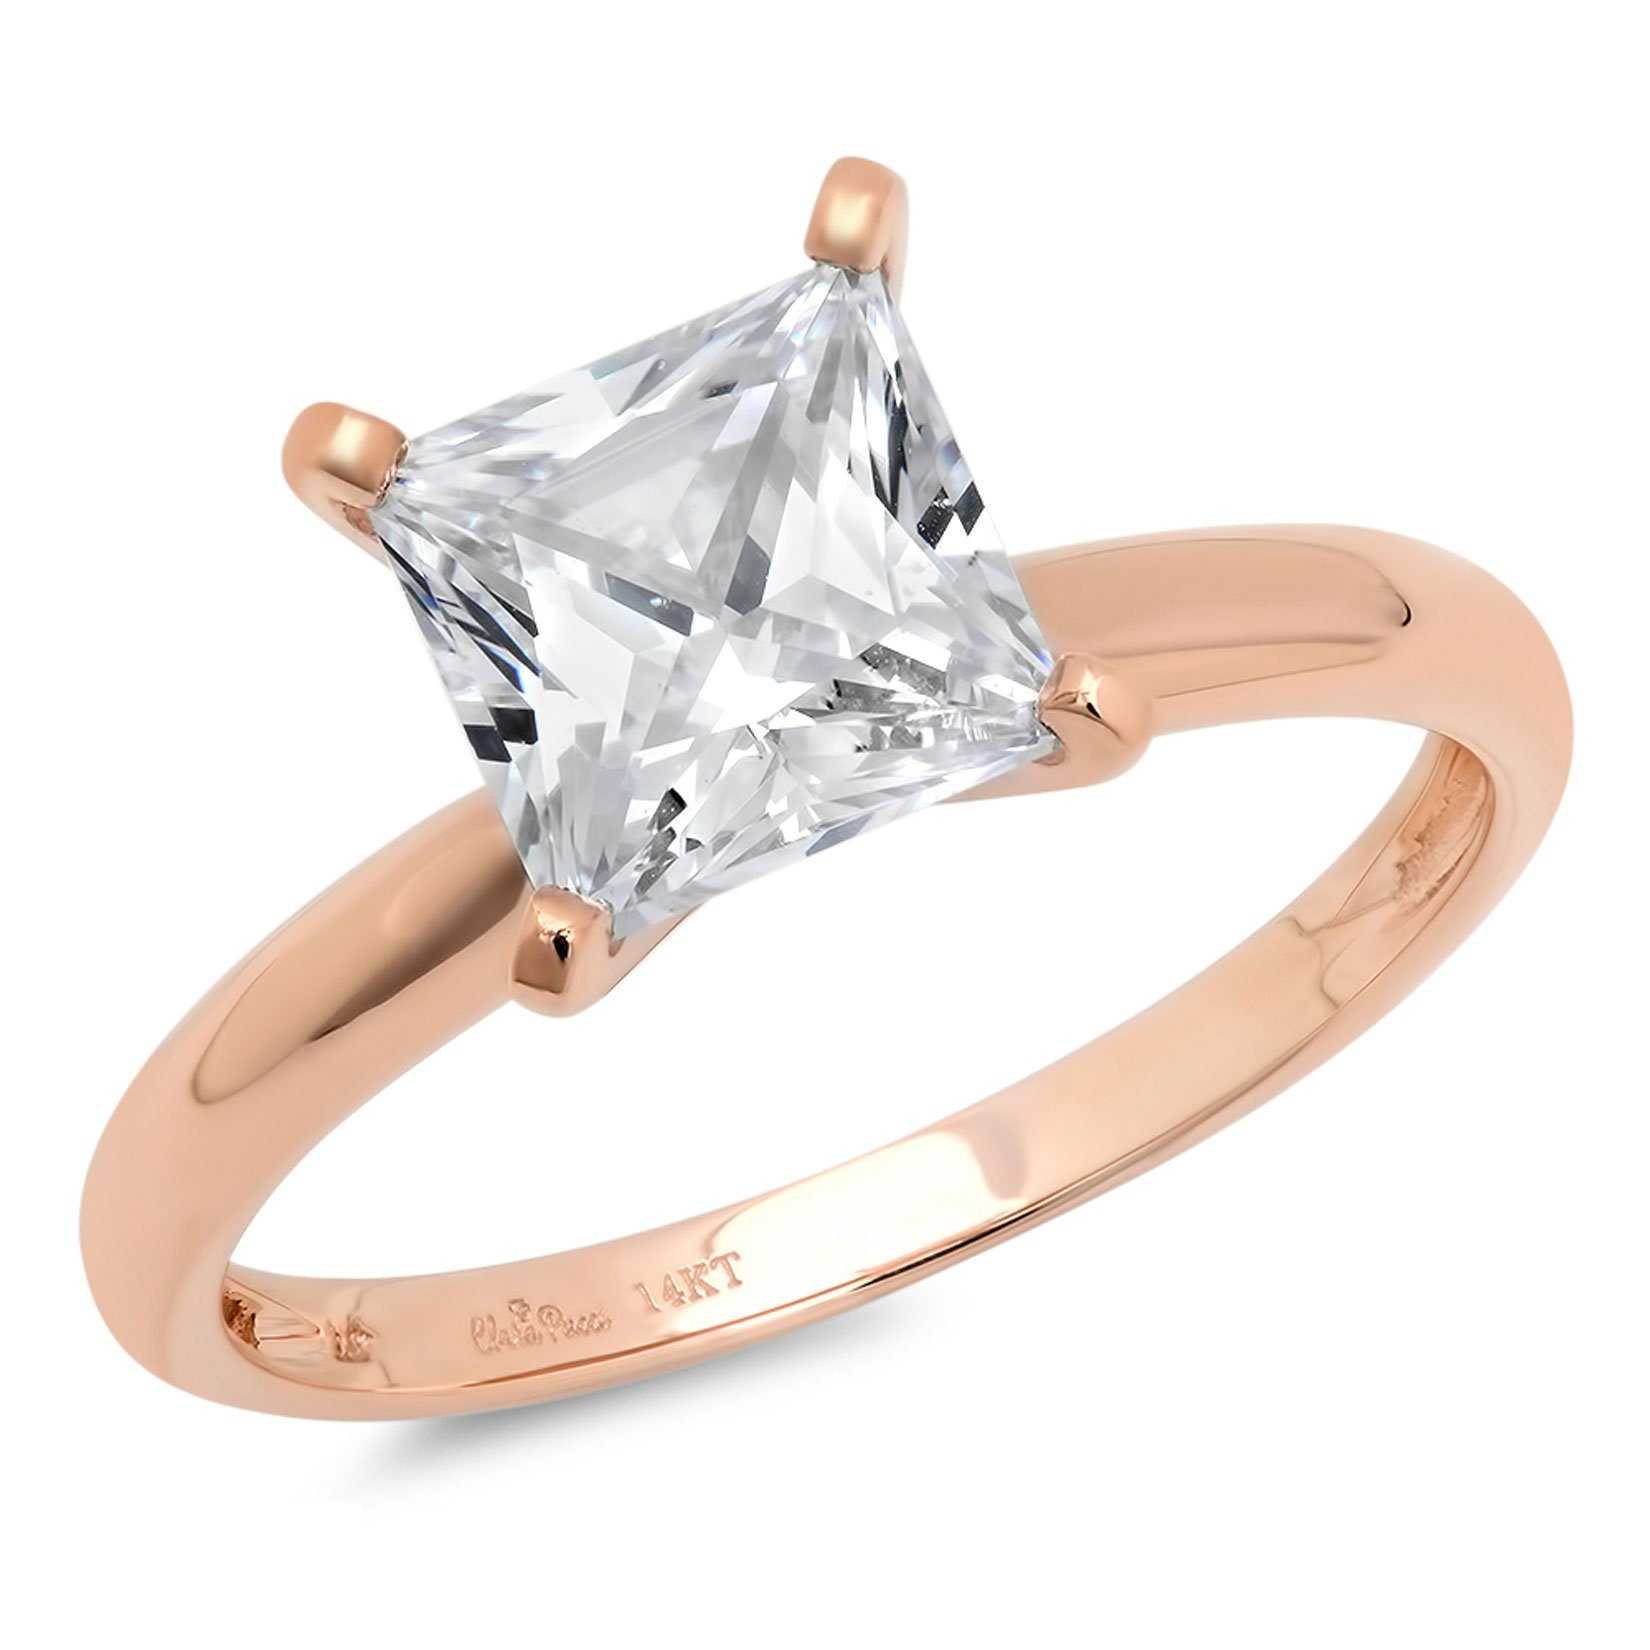 0.7ct Princess Brilliant Cut Classic Wedding Statement Anniversary Designer Bridal Solitaire Engagement Promise Ring Solid 14k Rose Gold, Clara Pucci, 8.25 by Clara Pucci